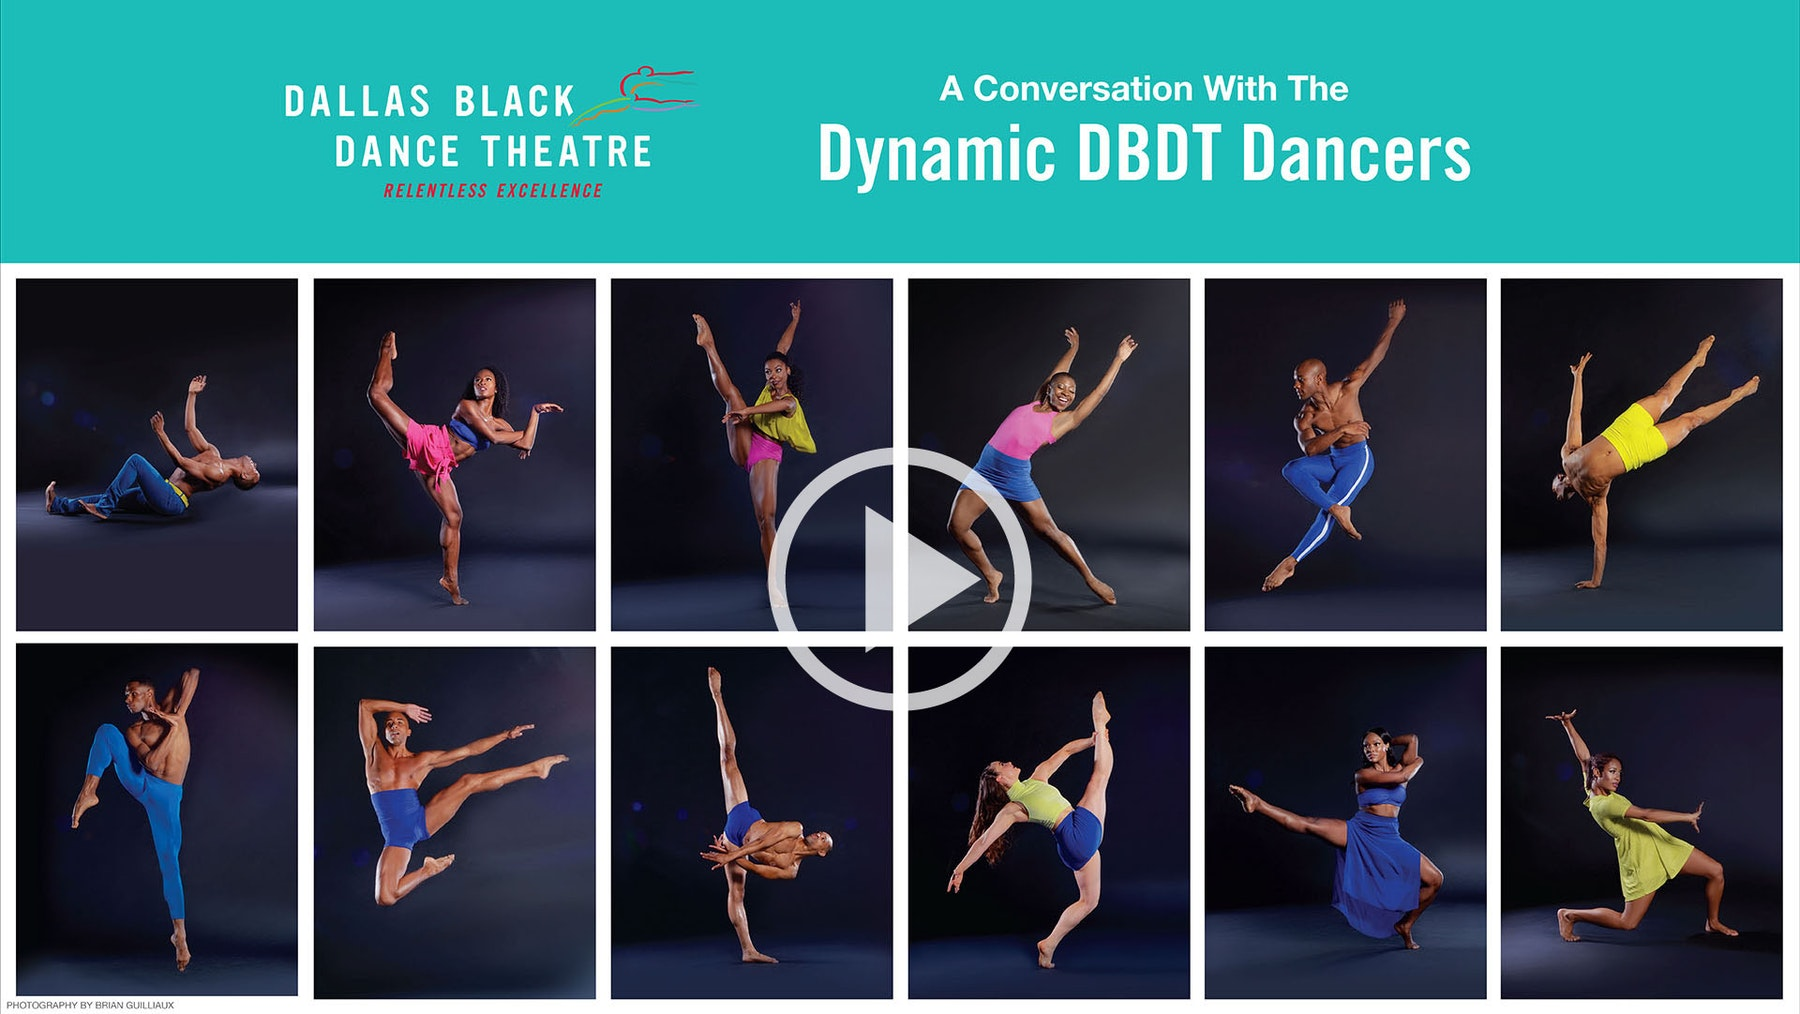 A Conversation with the Dynamic DBDT Dancers